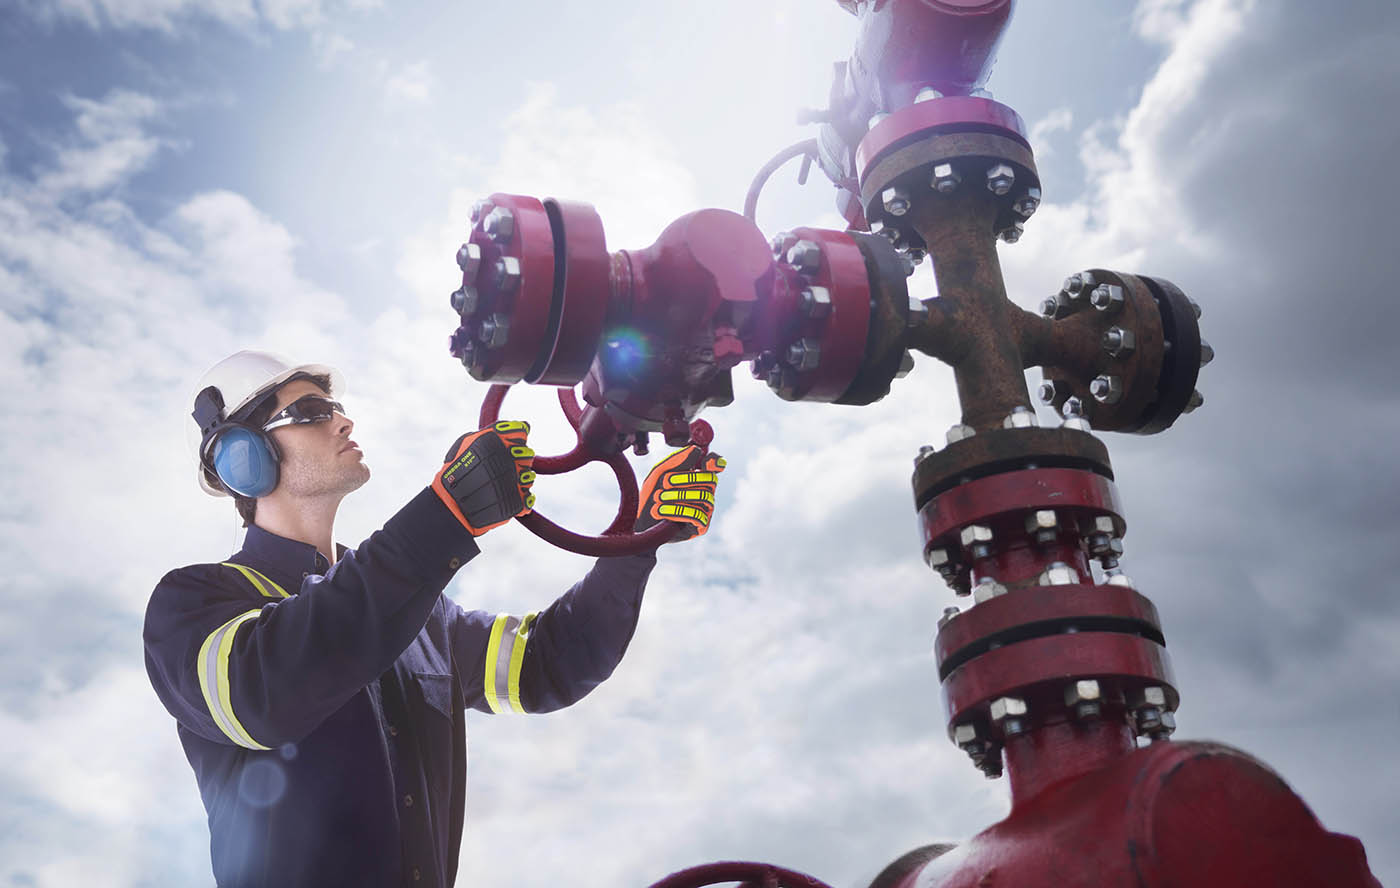 Oil/Gas worker in high visibility flame resistant coveralls